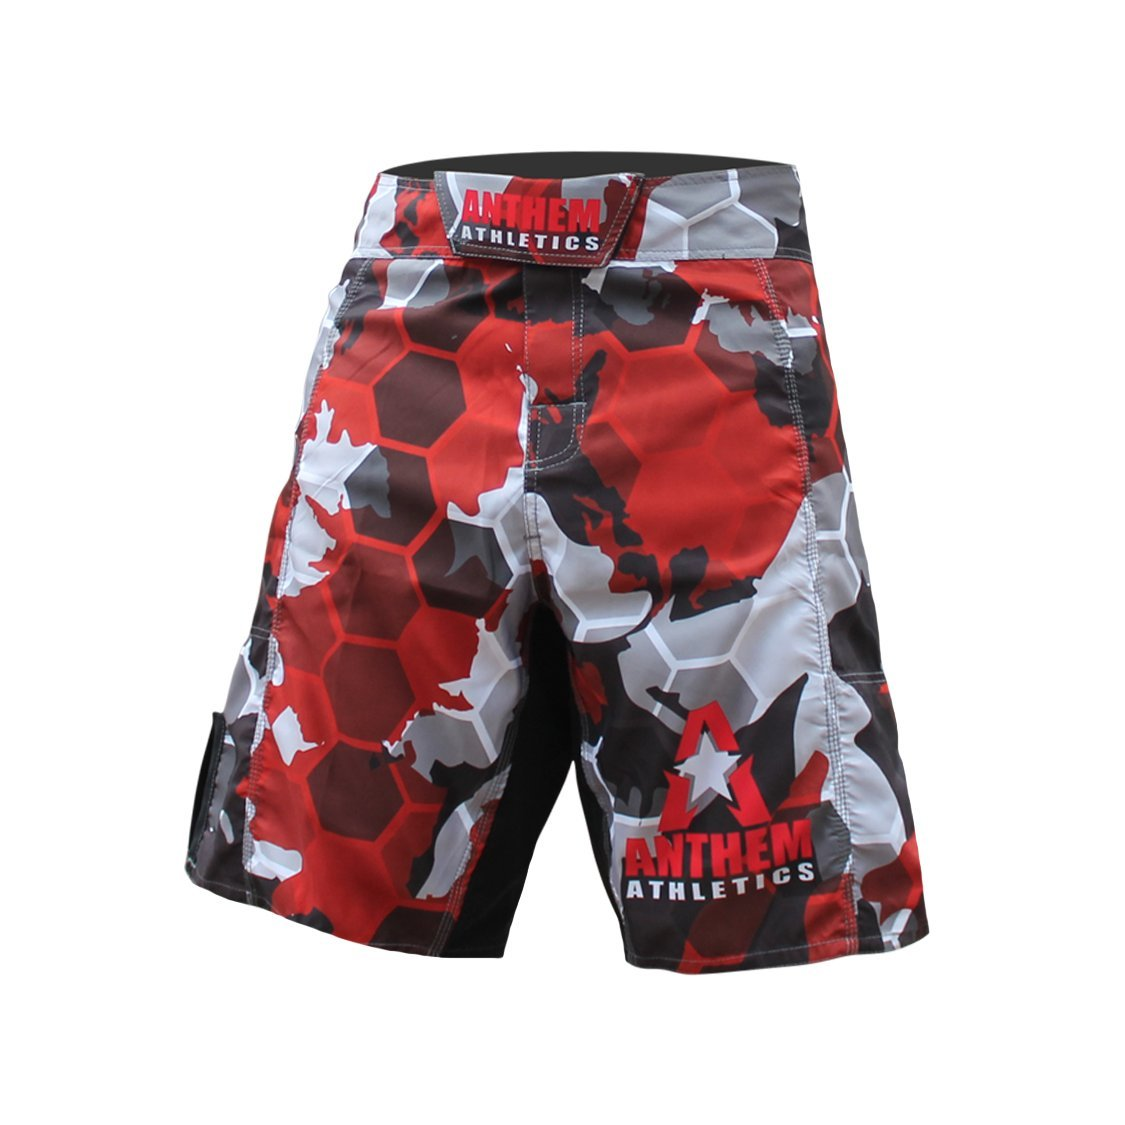 Anthem Athletics RESILIENCE MMA Shorts - Red Camo Hex - 38''